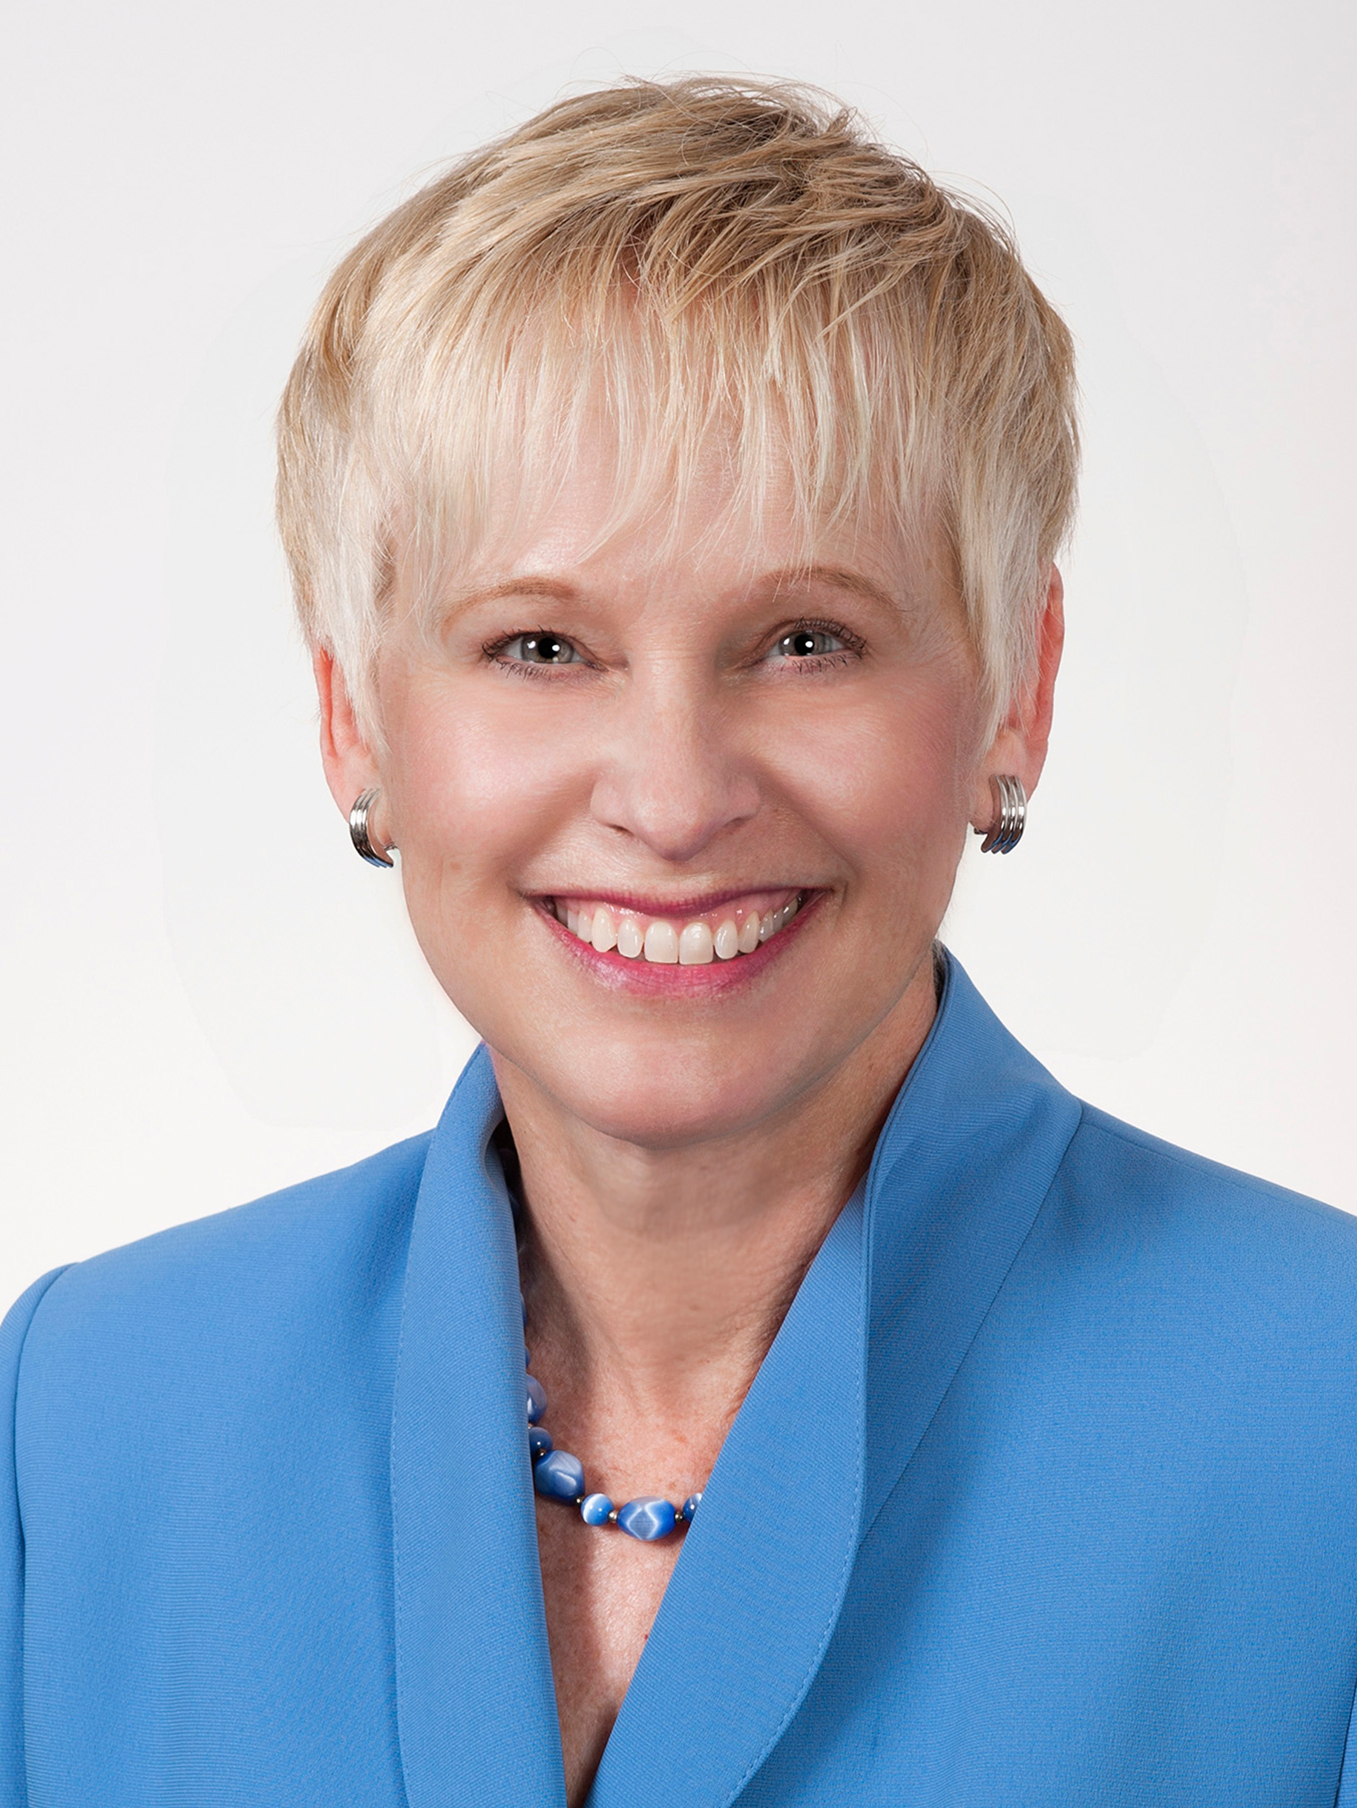 Linda S. Brown, Partner, Co-founder, Director of Operations, and CCO at Day Hagan Mutual Funds in Sarasota, FL.